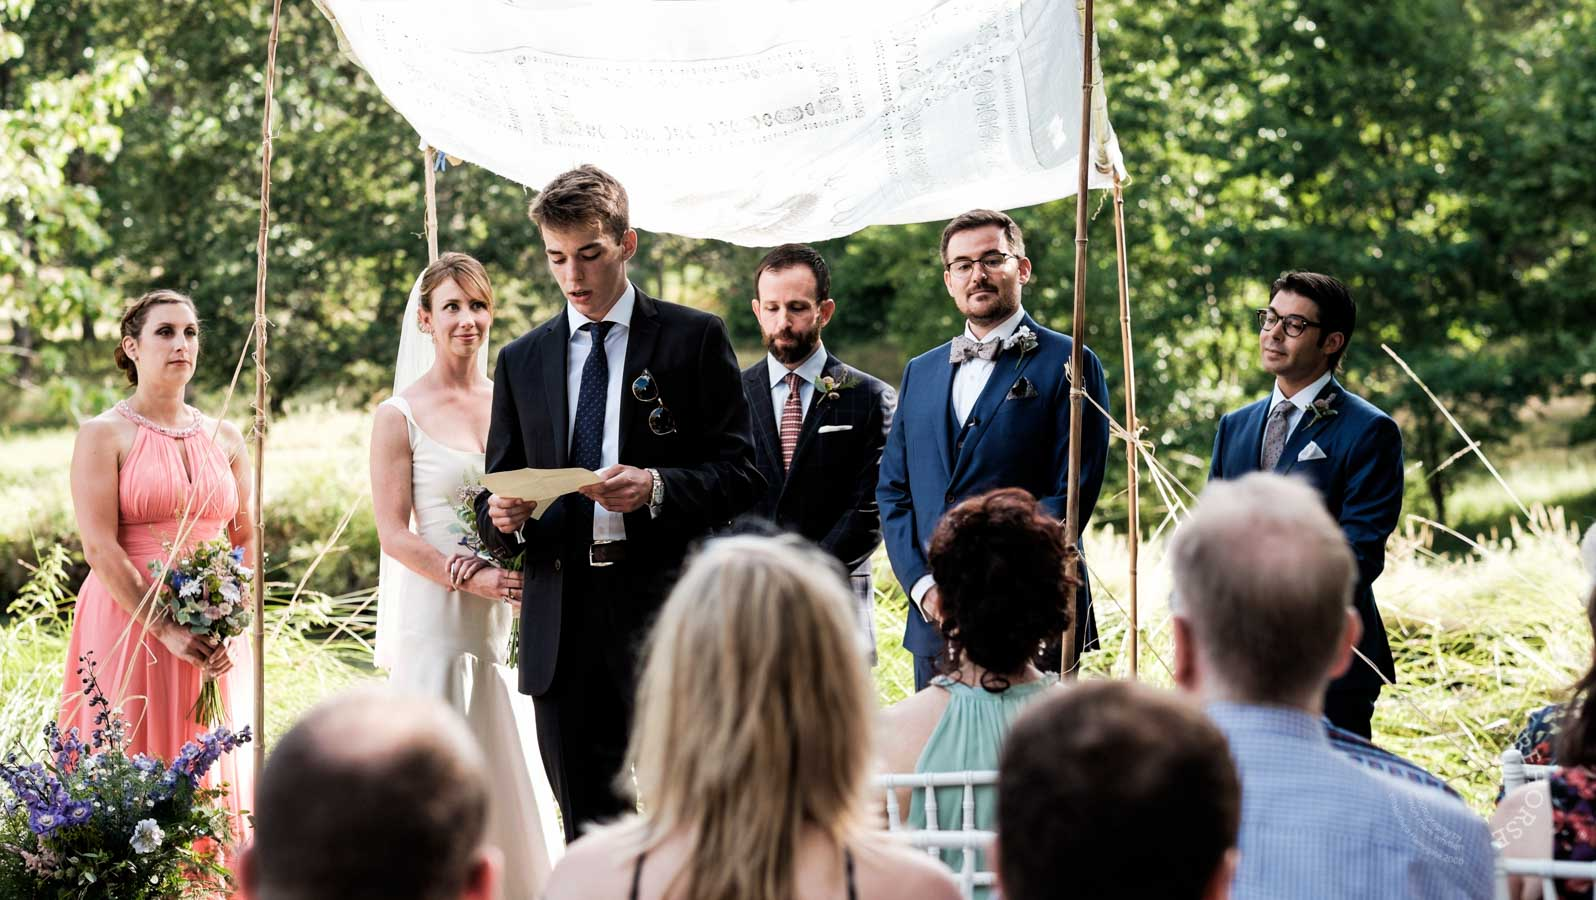 Lot-et-Garonne-Wedding-Photography-223